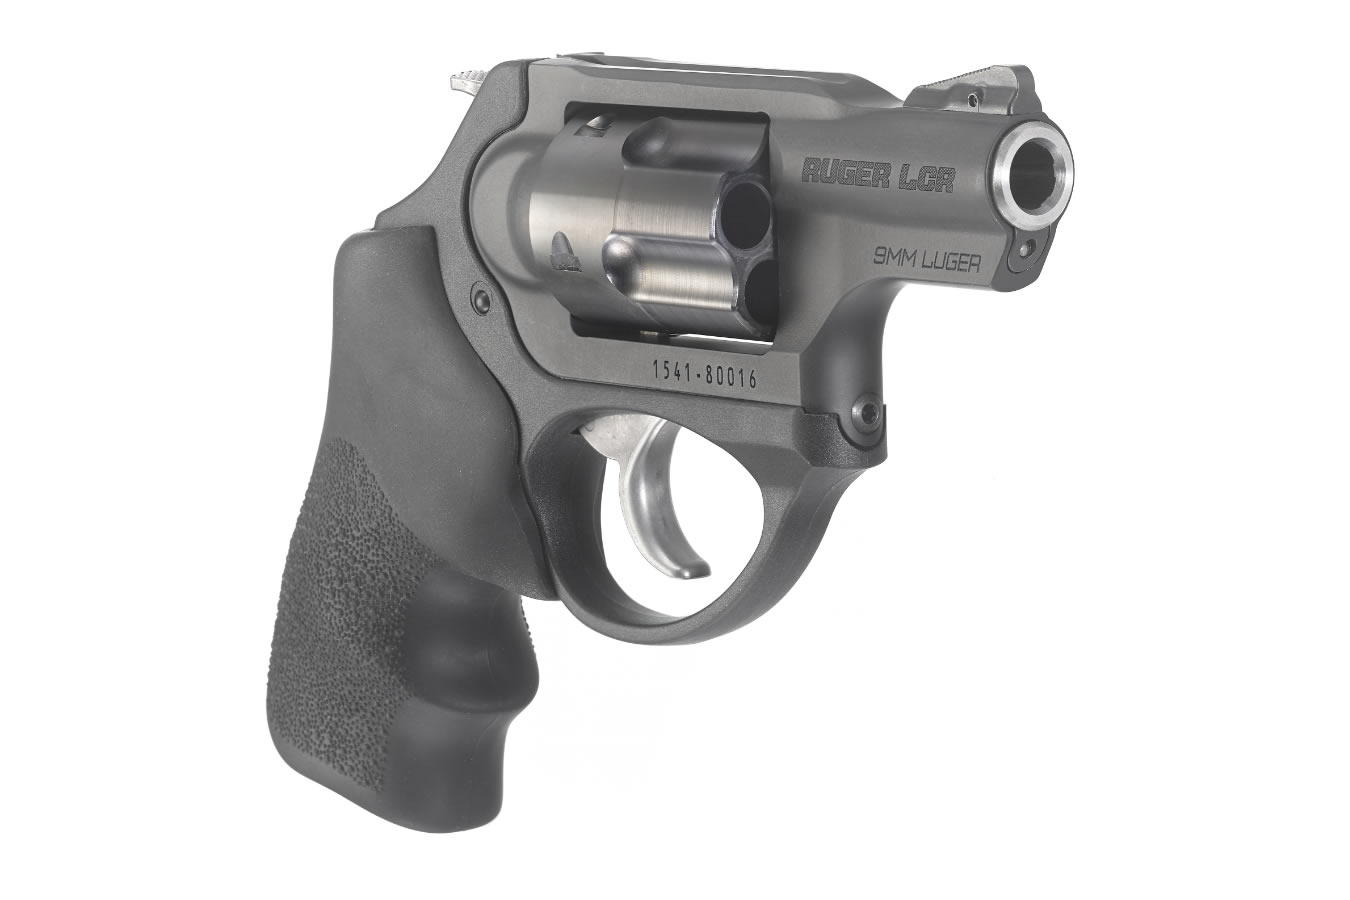 LCRx 9mm Double-Action Revolver with 1 87-Inch Barrel